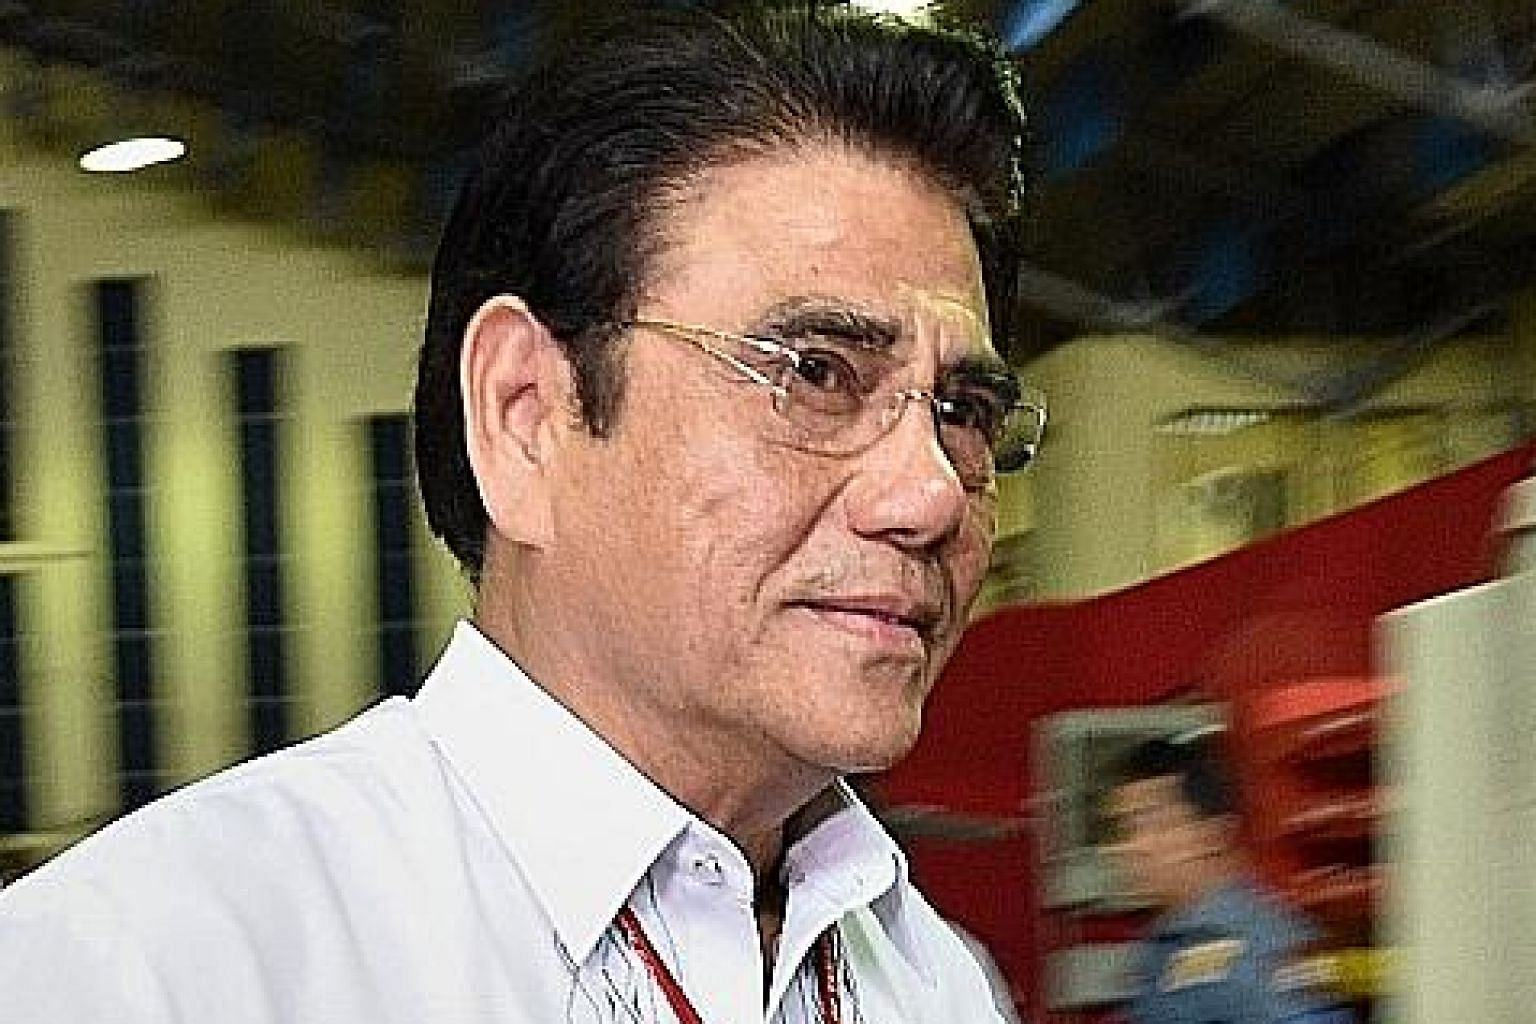 Mr Antonio Halili had expressed concern over the way police conducted the war on drugs.